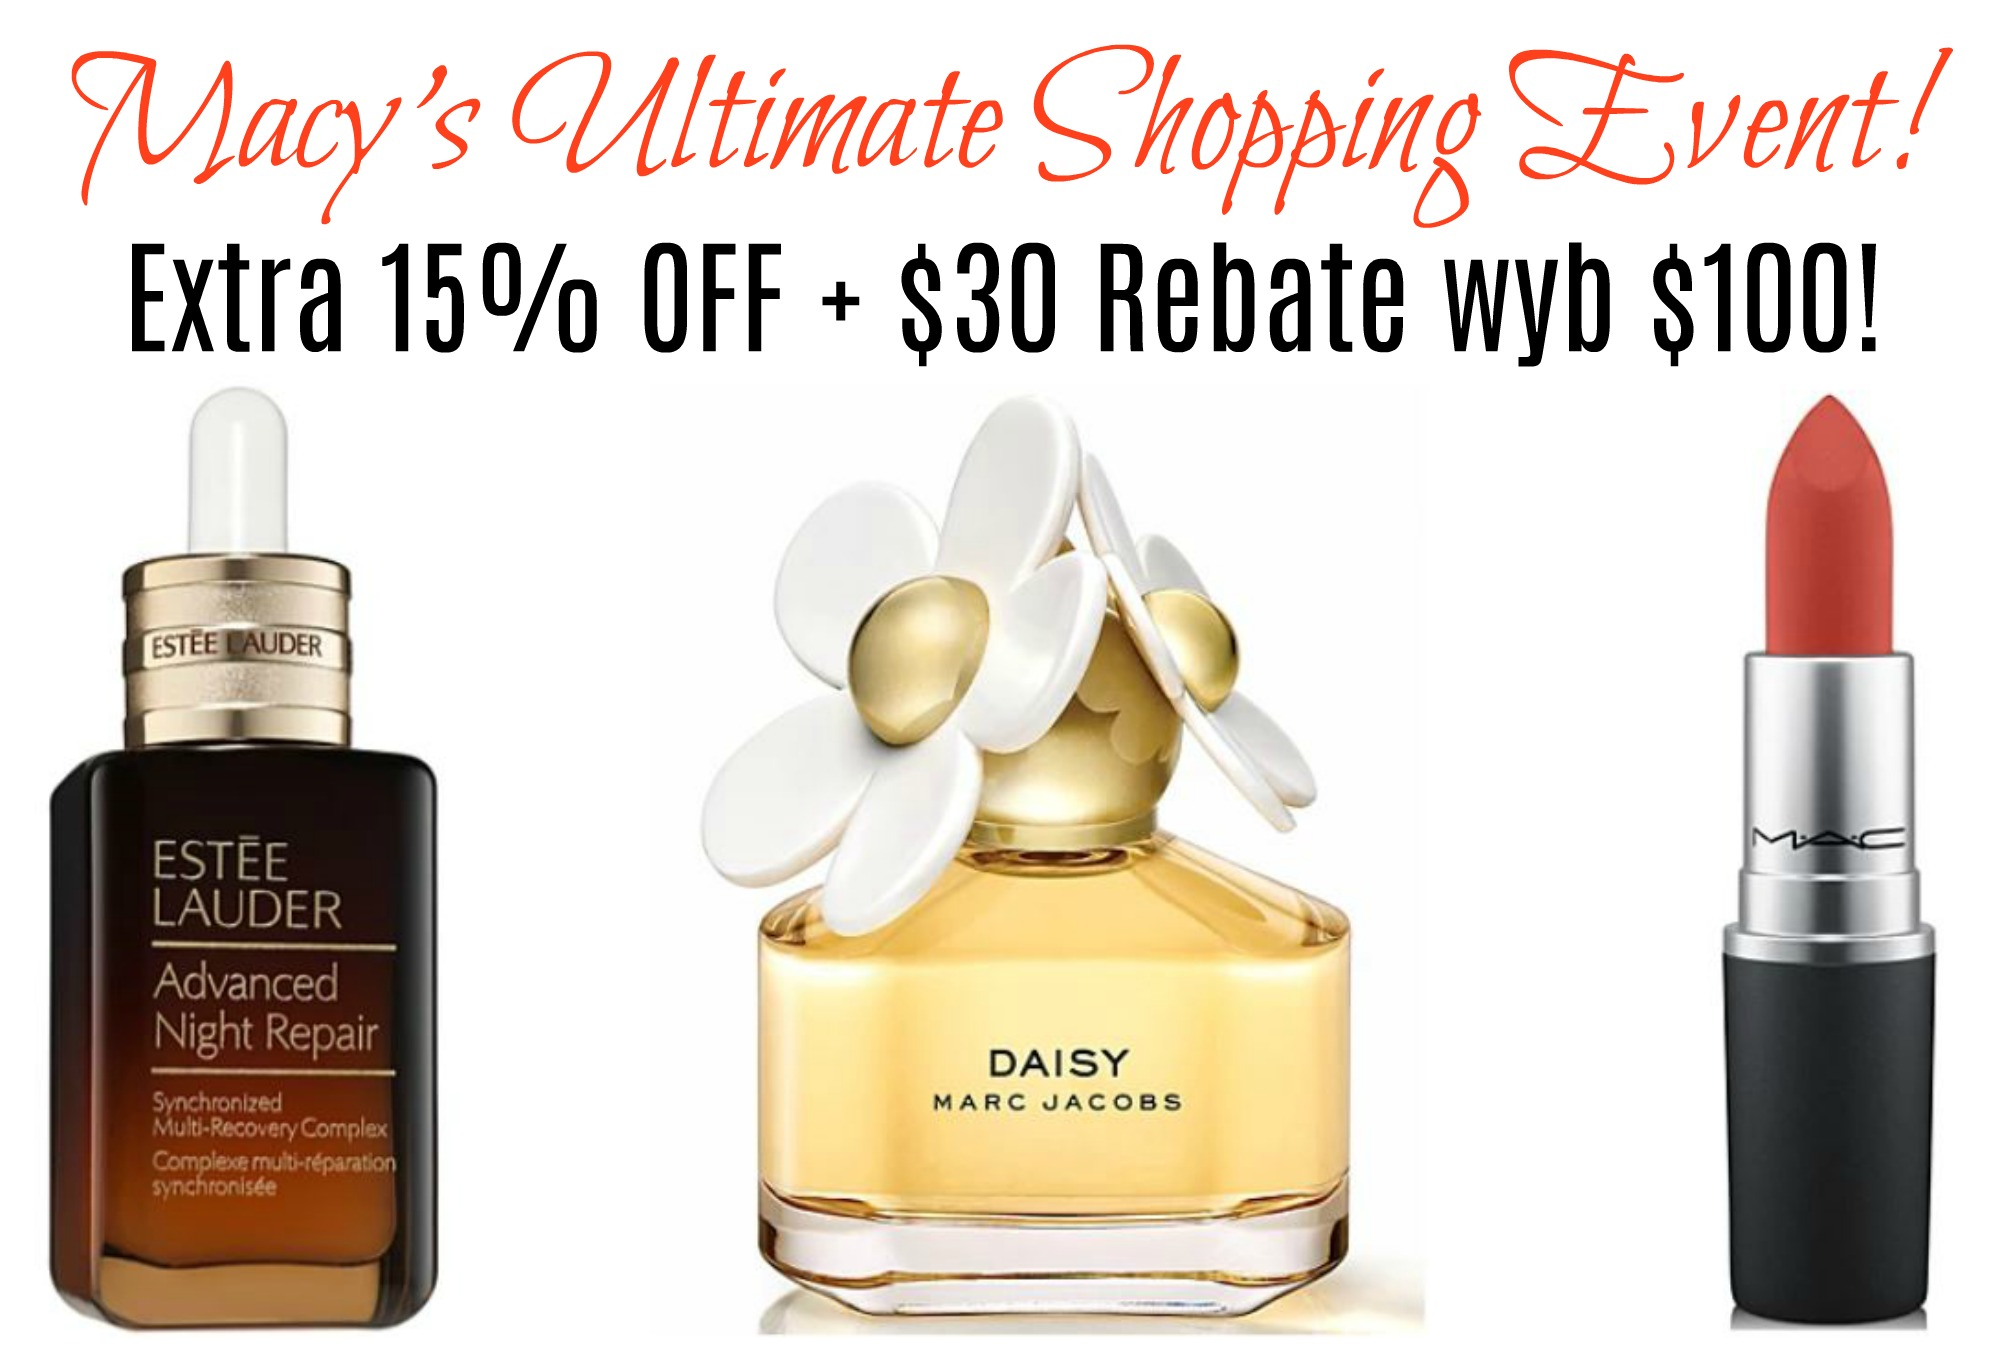 Save 15% + $30 Rebate wyb $100 during Macy's Ultimate Shopping Event!